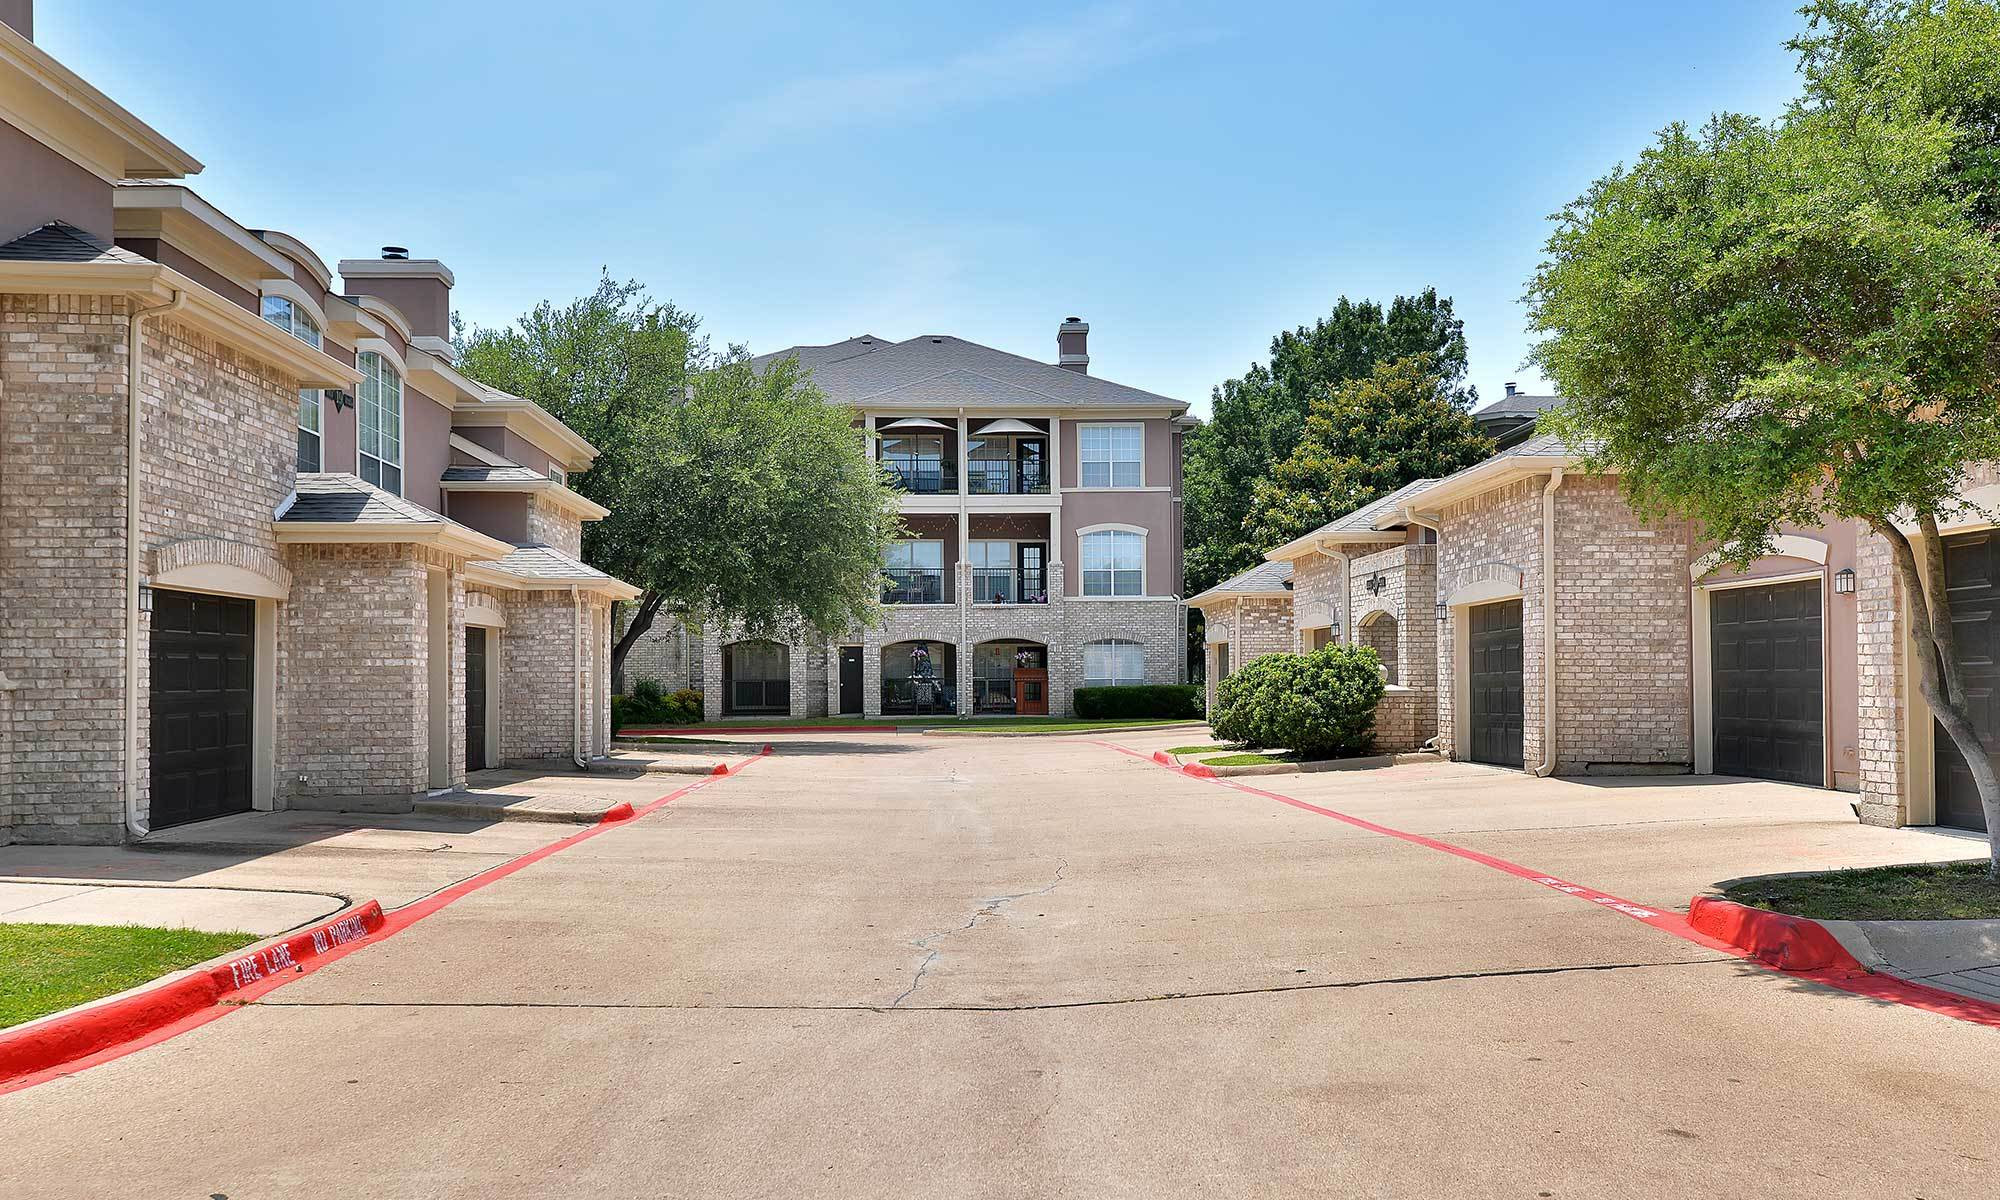 ,Apartments For Rent Near Plano Tx  ,apartments for rent near plano tx 75024  ,apartments for rent plano tx 75093  ,apartments for rent plano tx 75075  ,apartments for rent plano tx 75025  ,apartments for rent plano tx 75023  ,apartments for rent in plano tx all bills paid  ,apartments for rent in plano tx with bad credit  ,apartments for rent east plano tx  ,apartments for rent in plano tx area  ,apartments for sale plano tx  ,apartments for rent near legacy drive plano tx  ,house for rent plano tx 75024  ,apartments for rent in plano texas 75024  ,house for sale plano tx 75024  ,apartments for rent in plano tx 75024  ,apartments for rent in plano tx 75093  ,house for rent plano tx 75075  ,apartments for rent in plano tx 75075  ,house for rent in plano tx 75075  ,house for rent plano tx 75025  ,apartments for rent in plano tx 75025  ,house for rent in plano tx 75025  ,house for rent plano tx 75023  ,apartments for rent in plano tx 75023  ,house for rent in plano tx 75023  ,apartments for rent in east plano texas  ,affordable apartments for rent in plano tx  ,best apartments for rent in plano tx  ,cheap apartments for rent in plano tx  ,apartments for rent in downtown plano tx  ,apartments for rent in plano dallas tx  ,duplex apartments for rent in plano tx  ,furnished apartments for rent in plano tx  ,apartments for rent in legacy plano tx  ,luxury apartments for rent in plano tx  ,apartments for rent in north plano tx  ,new apartments for rent in plano tx  ,studio apartments for rent in plano tx  ,senior apartments for rent in plano tx  ,townhome apartments for rent in plano tx  ,apartments for rent in west plano tx  ,homes for sale plano tx  ,homes for sale plano tx 75093  ,homes for sale plano tx 75023  ,homes for sale plano tx 75024  ,homes for sale plano tx 75074  ,homes for sale plano tx 75075  ,homes for sale plano tx 75025  ,homes for sale plano tx redfin  ,homes for sale plano tx with pool  ,apartment complex for sale plano tx  ,homes for sale plano texas 75075  ,homes for sale plano texas 75023  ,foreclosed homes for sale plano tx  ,modern homes for sale plano tx  ,new homes for sale plano tx  ,homes for sale in plano tx under $200 000  ,patio homes for sale plano tx  ,homes for sale in plano tx area